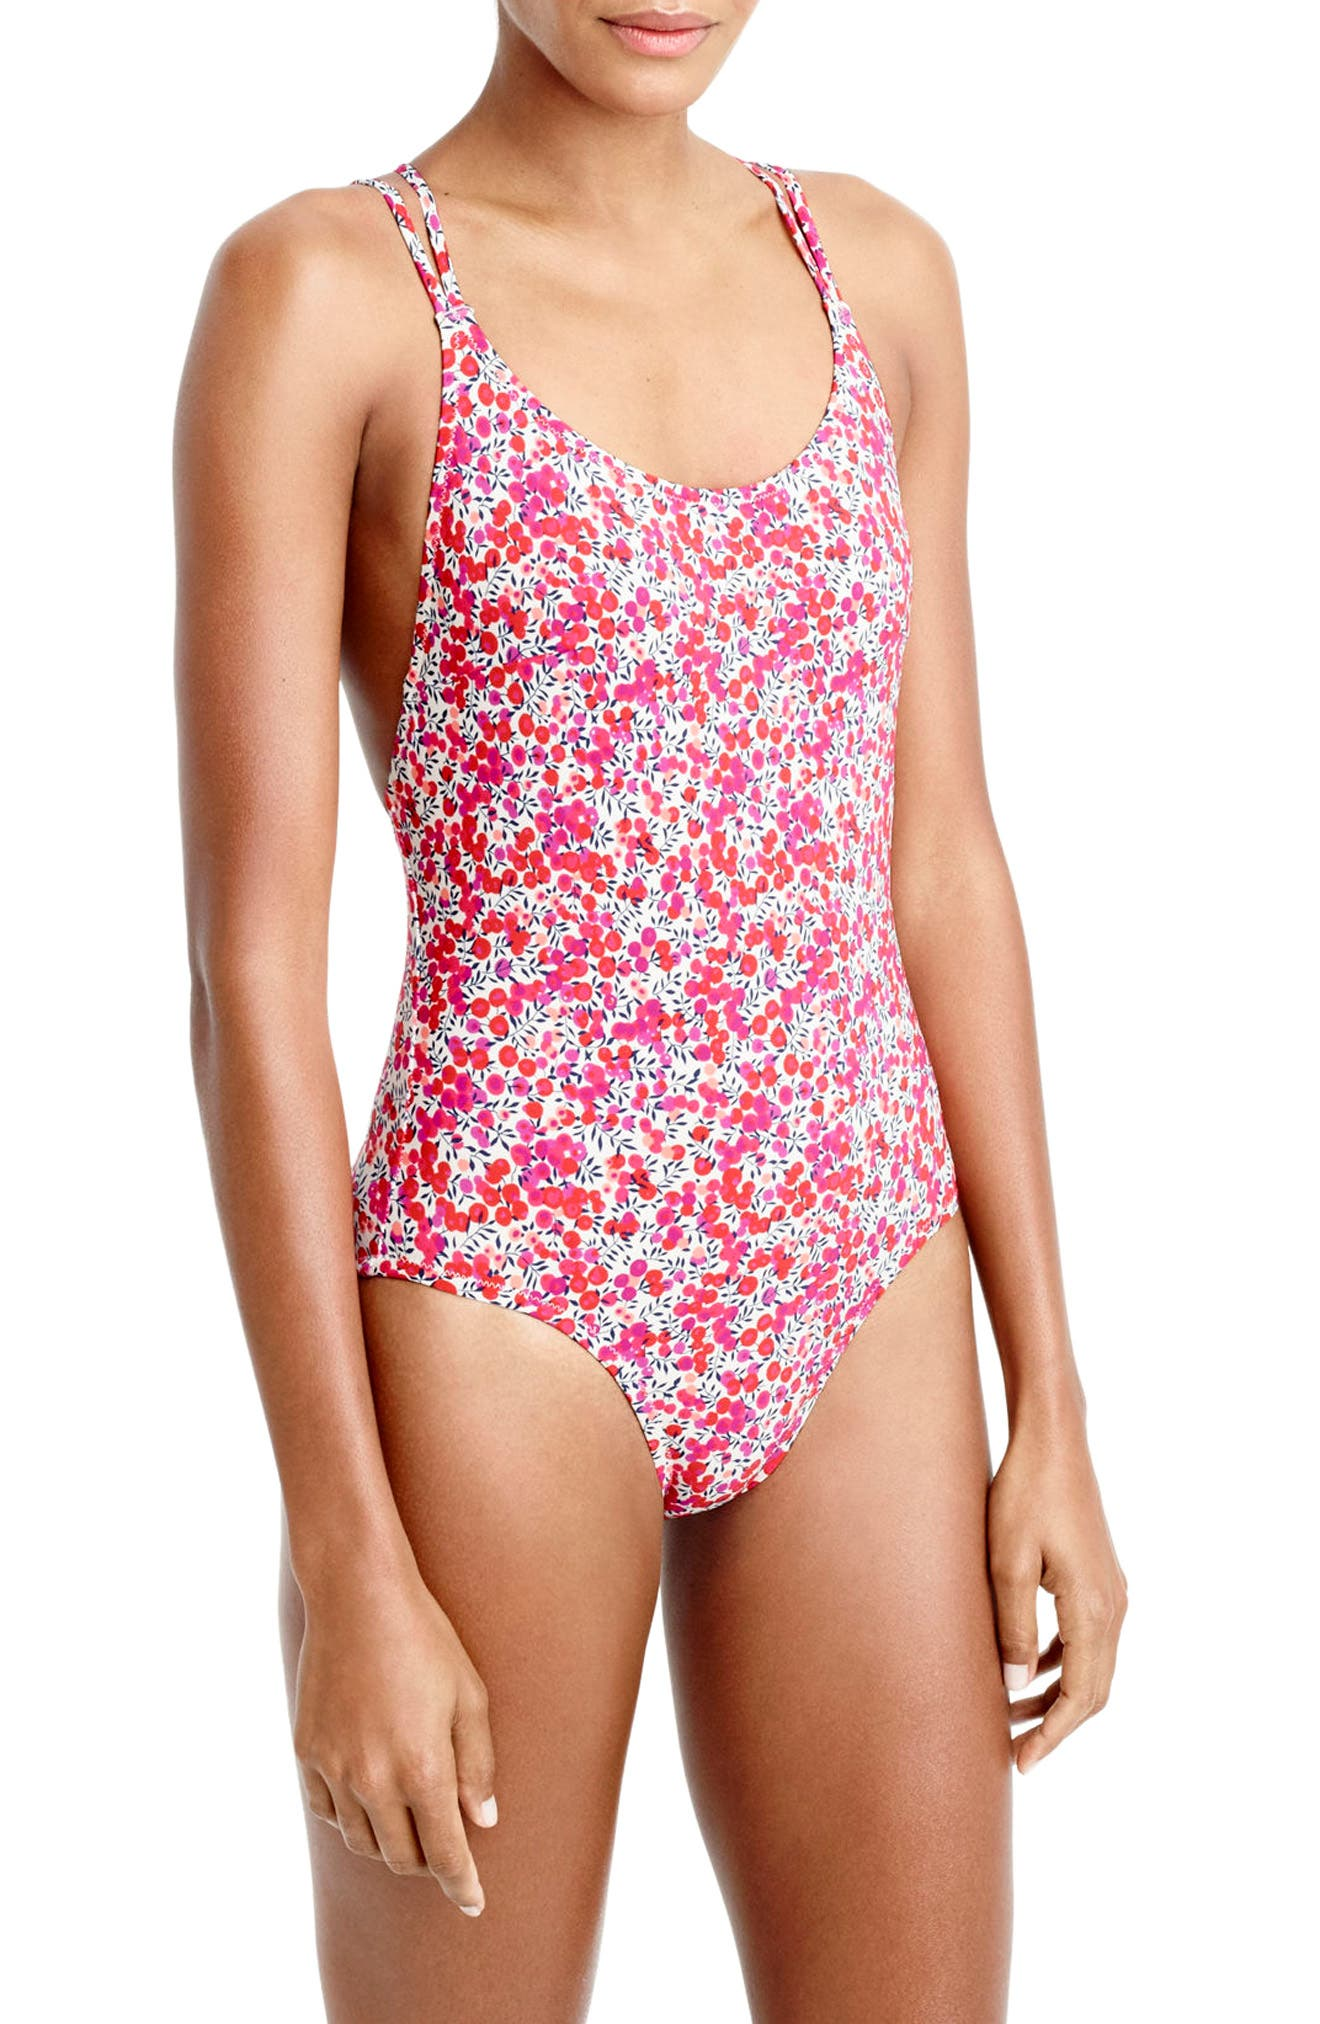 J.Crew Liberty One-Piece Swimsuit